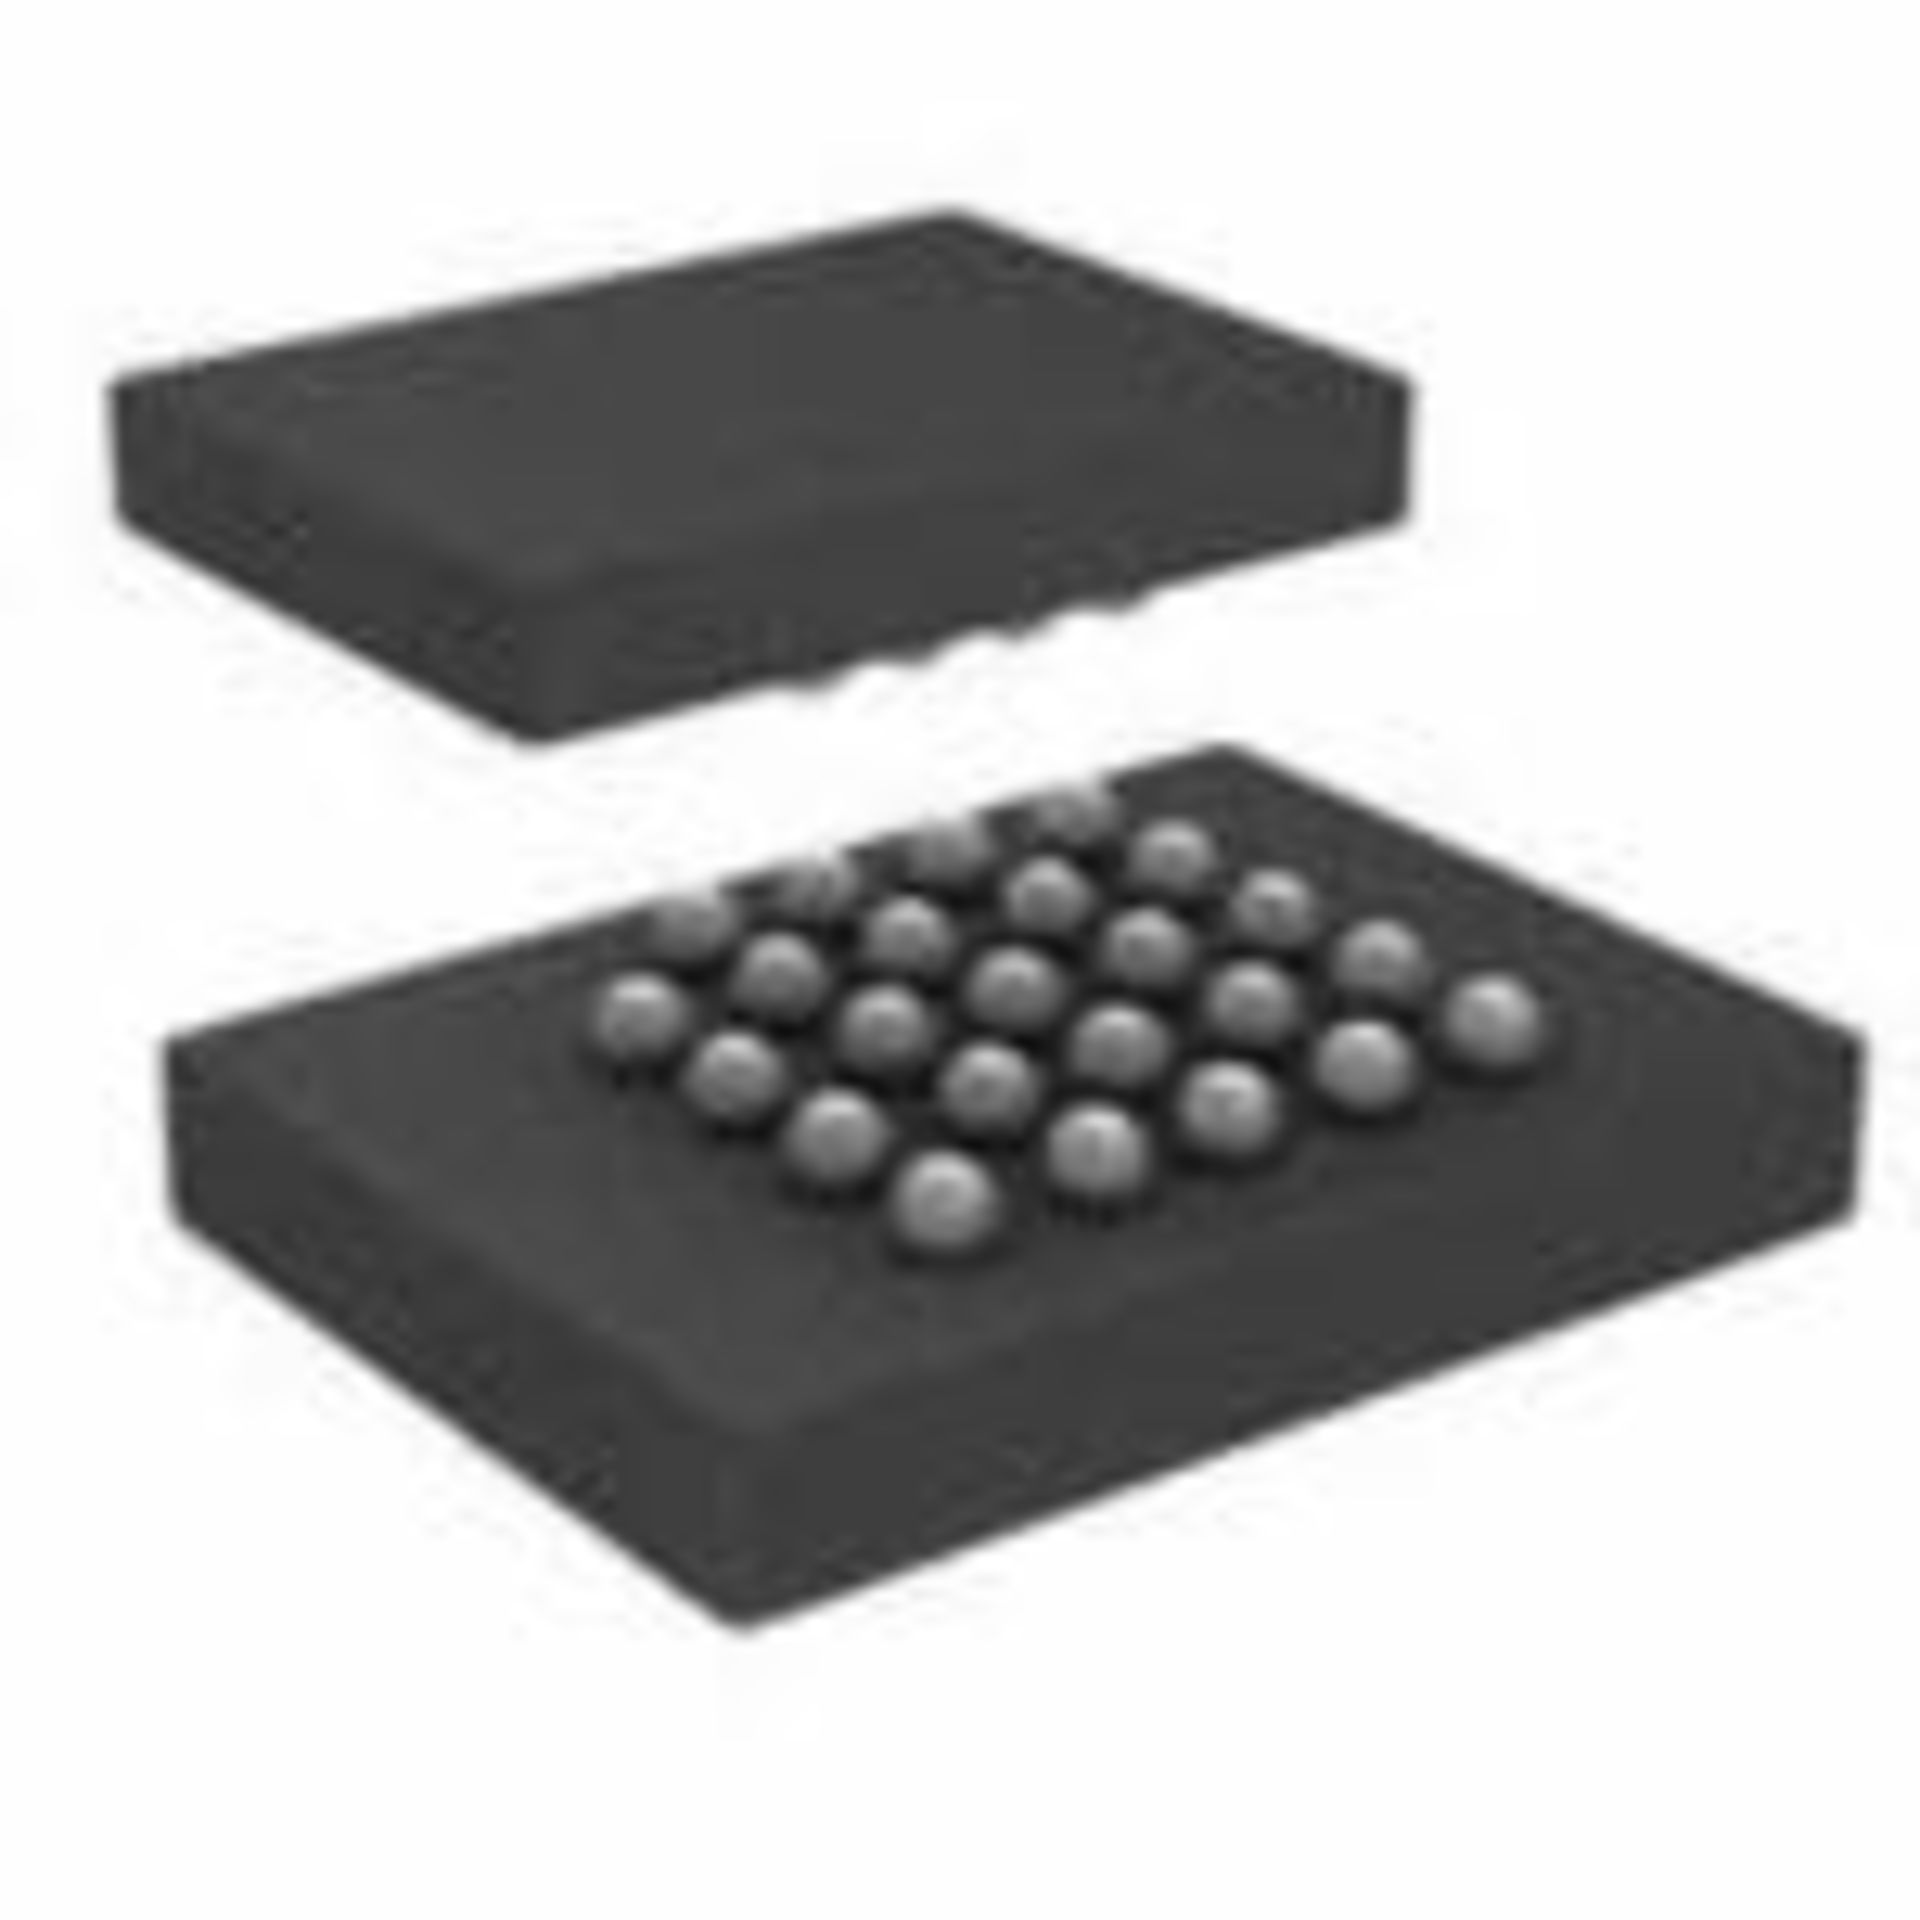 Intel EPCQL512F24IN Specialized Programmable Logic, Configuration Device 24-Pin FBGA Tray, QTY 1